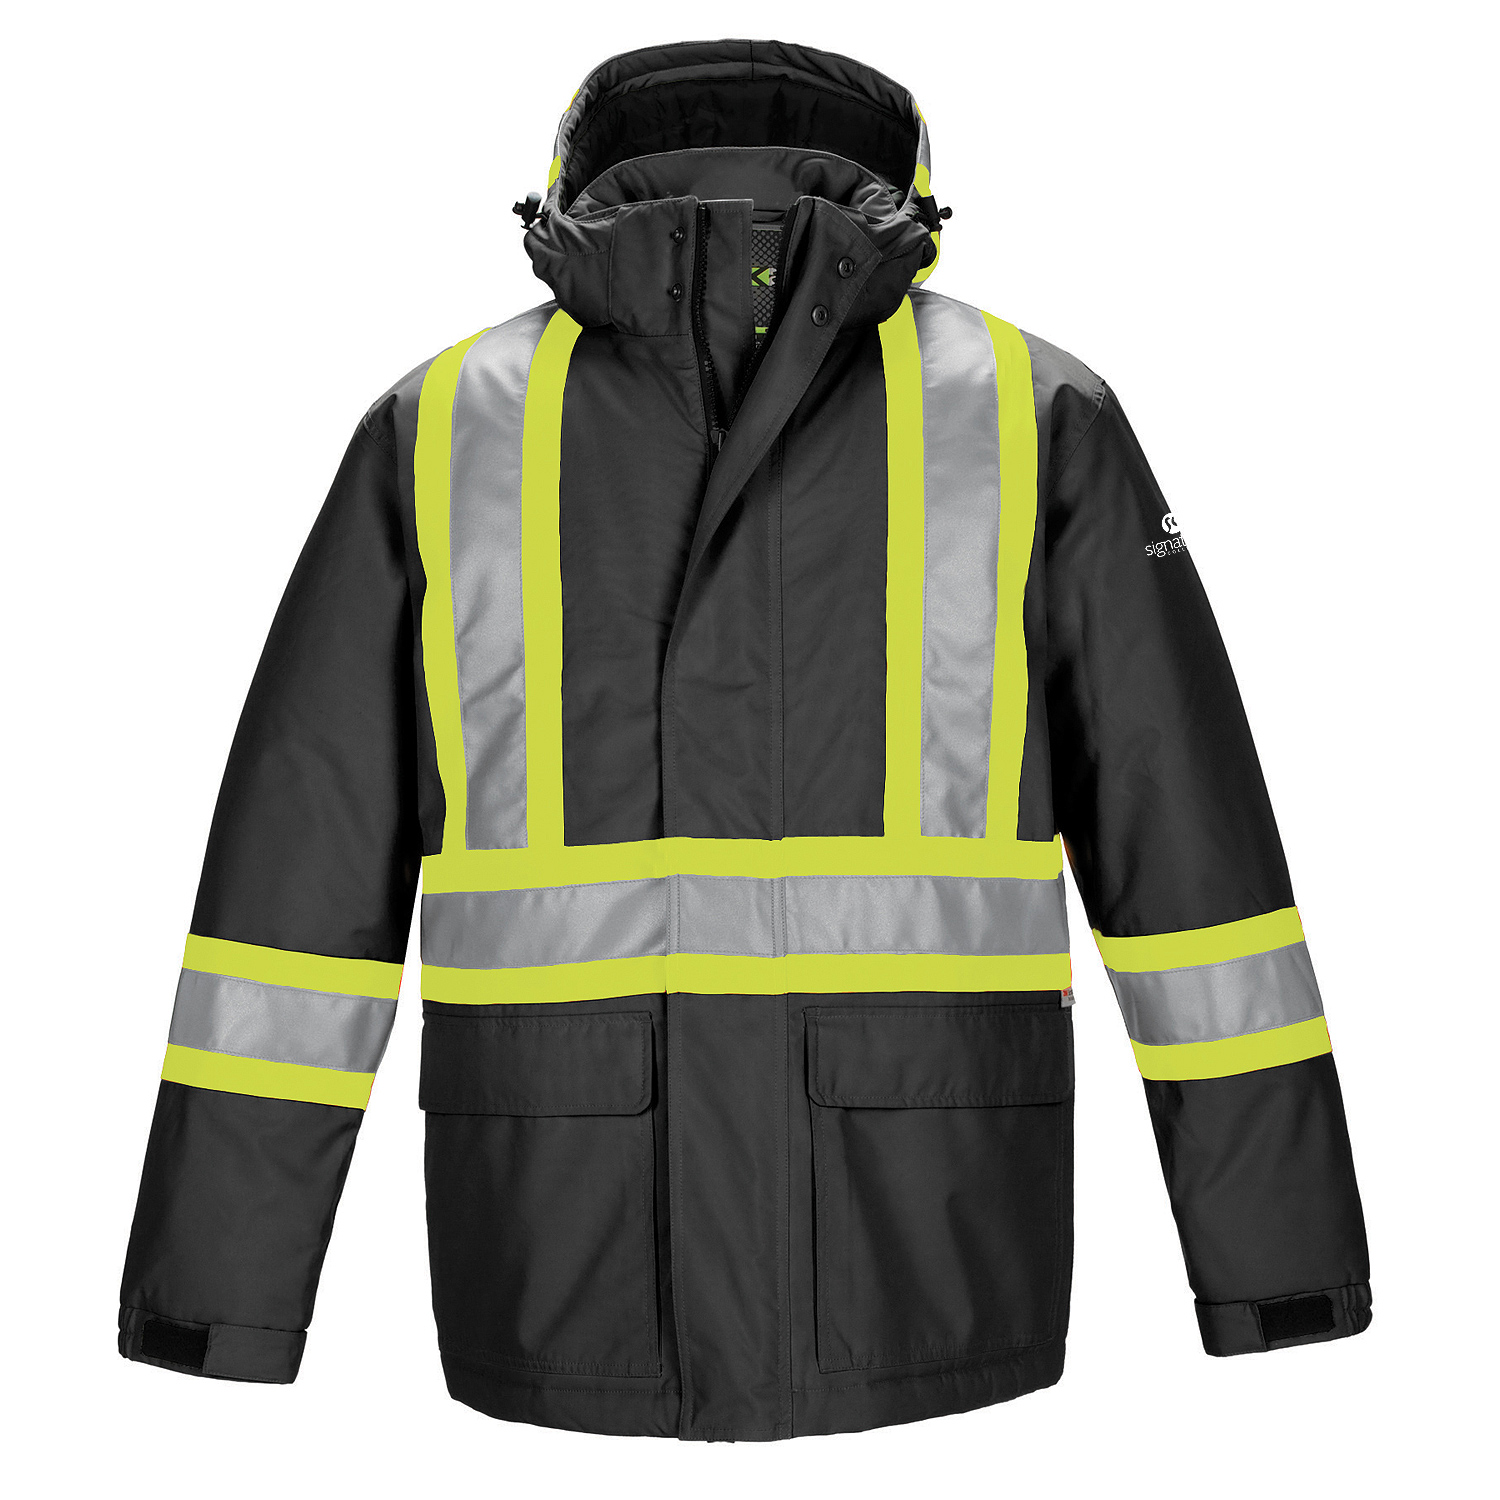 560d9f89844 Armour Polyester Canvas Hi-Vis Insulated Parka - Push Promotional Products  - Promotional Products